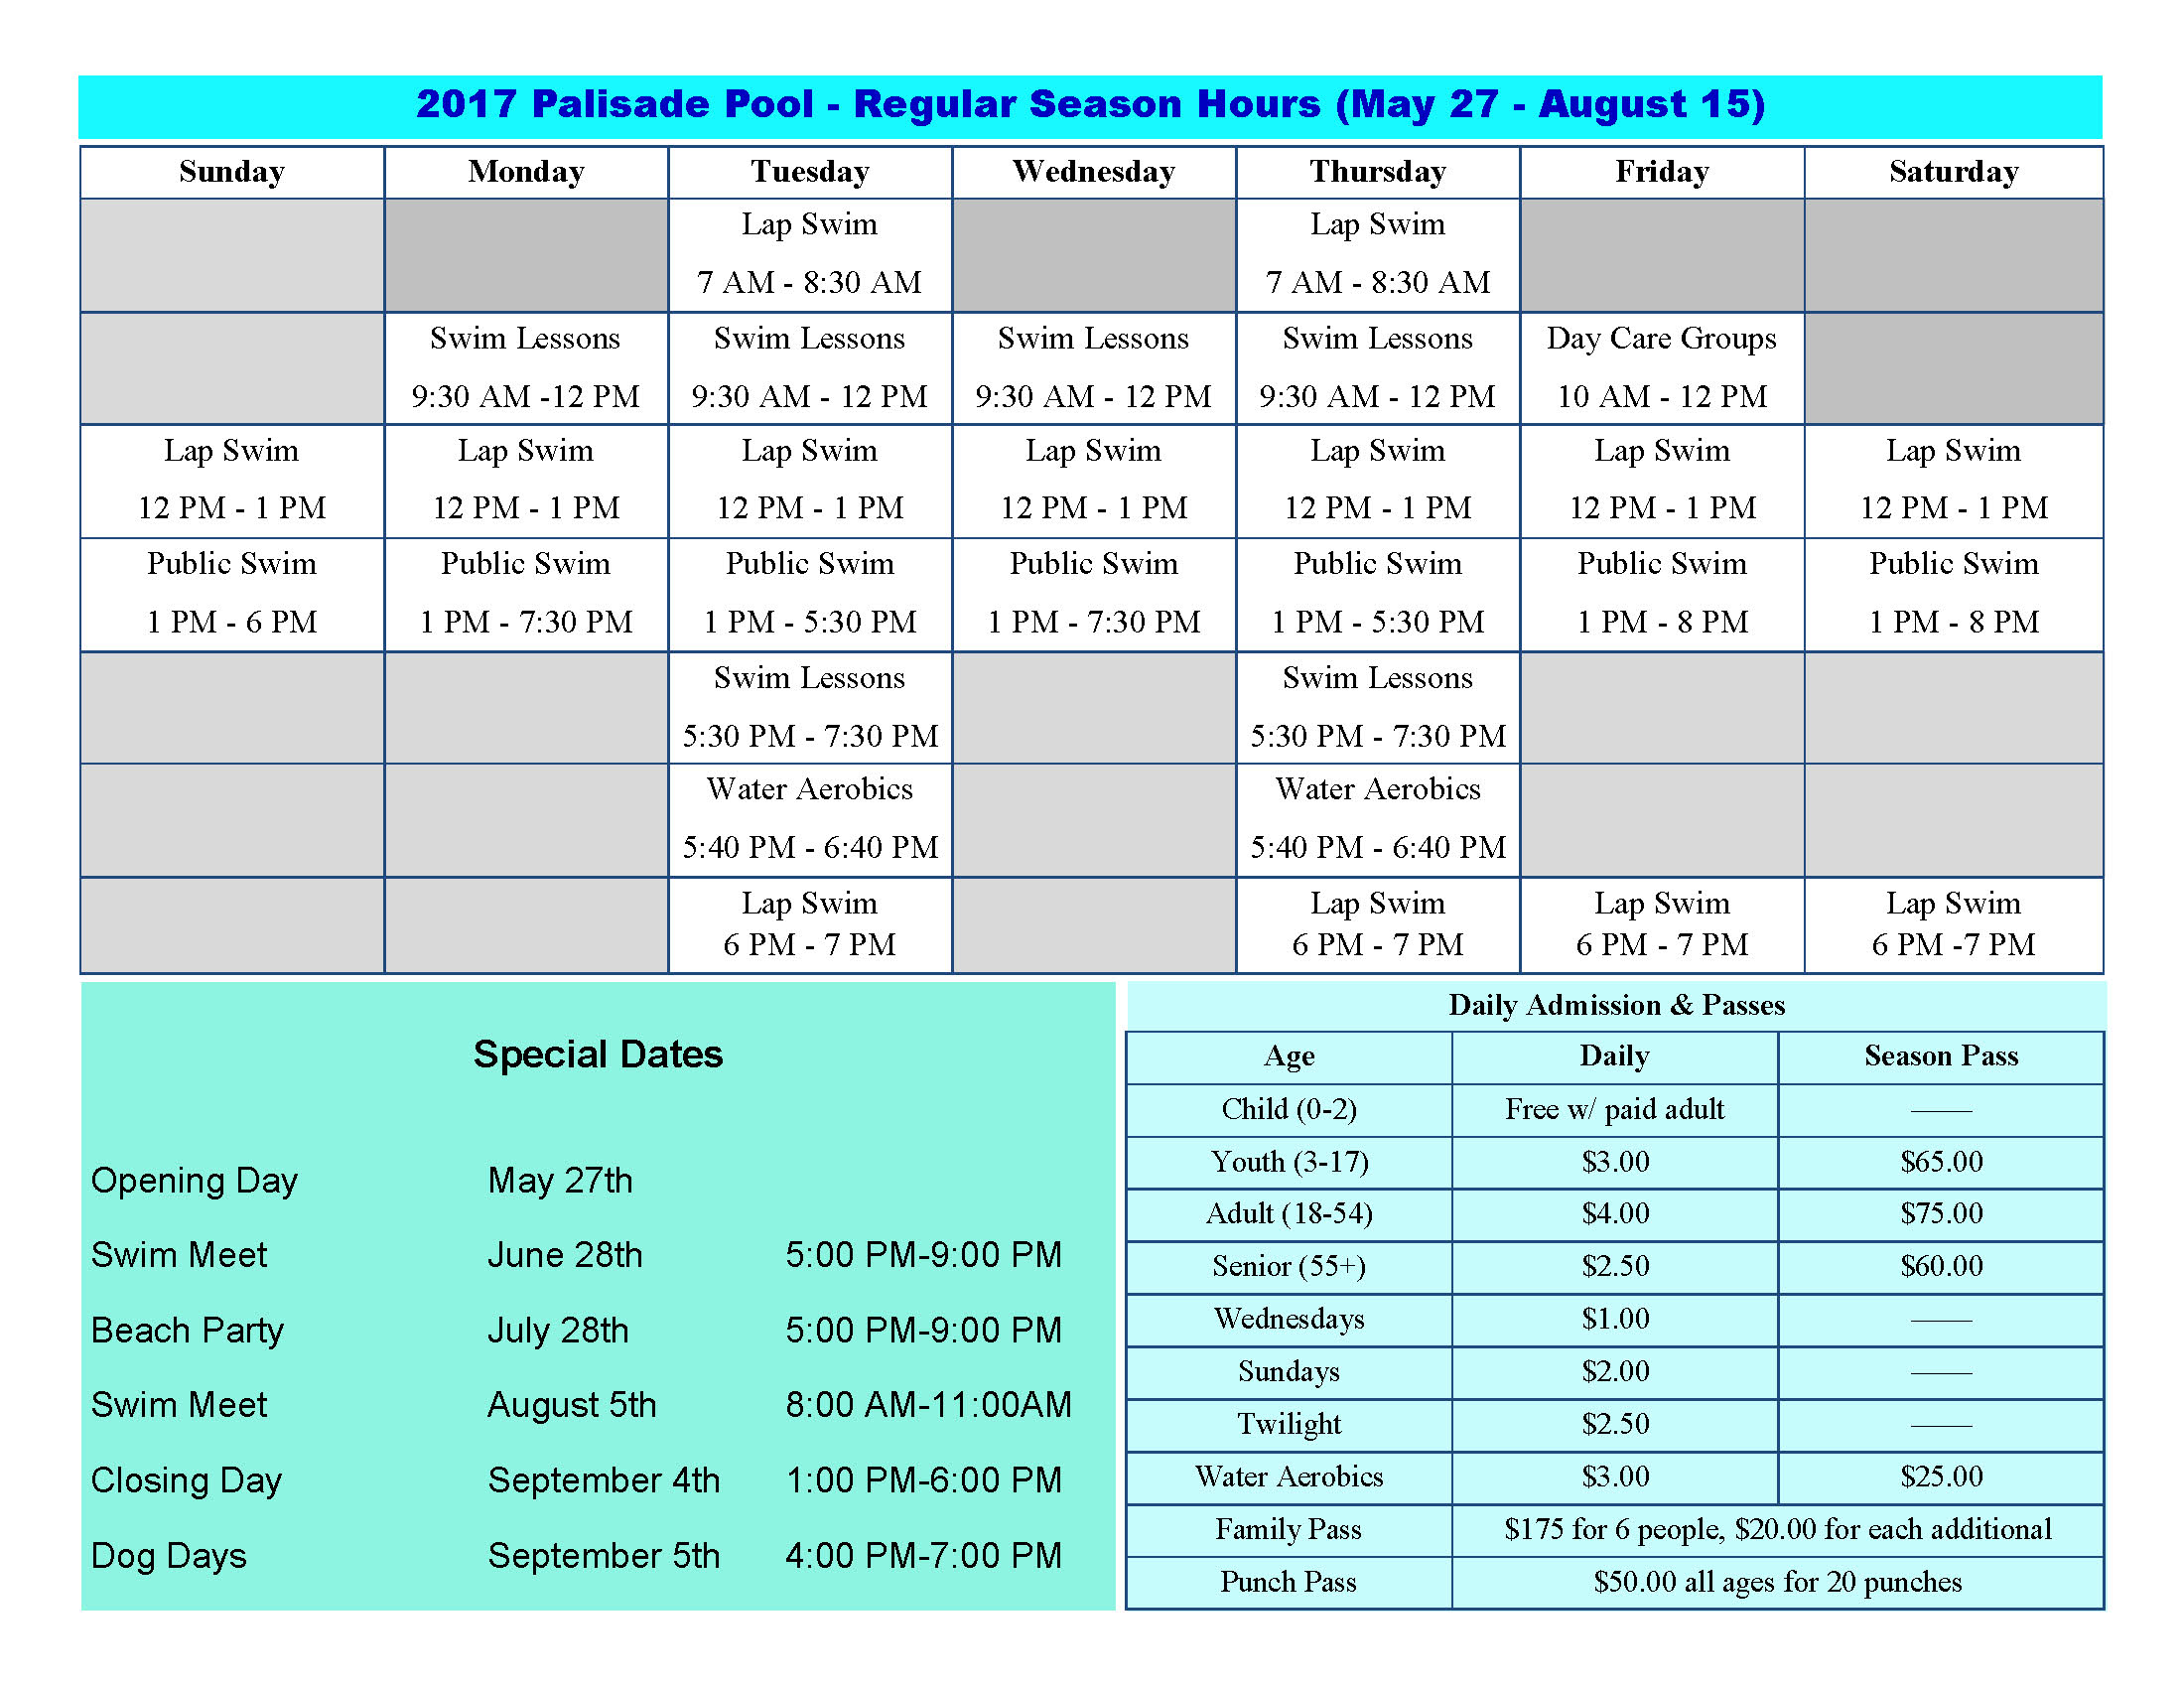 2017 pool schedule.pdf Page 1